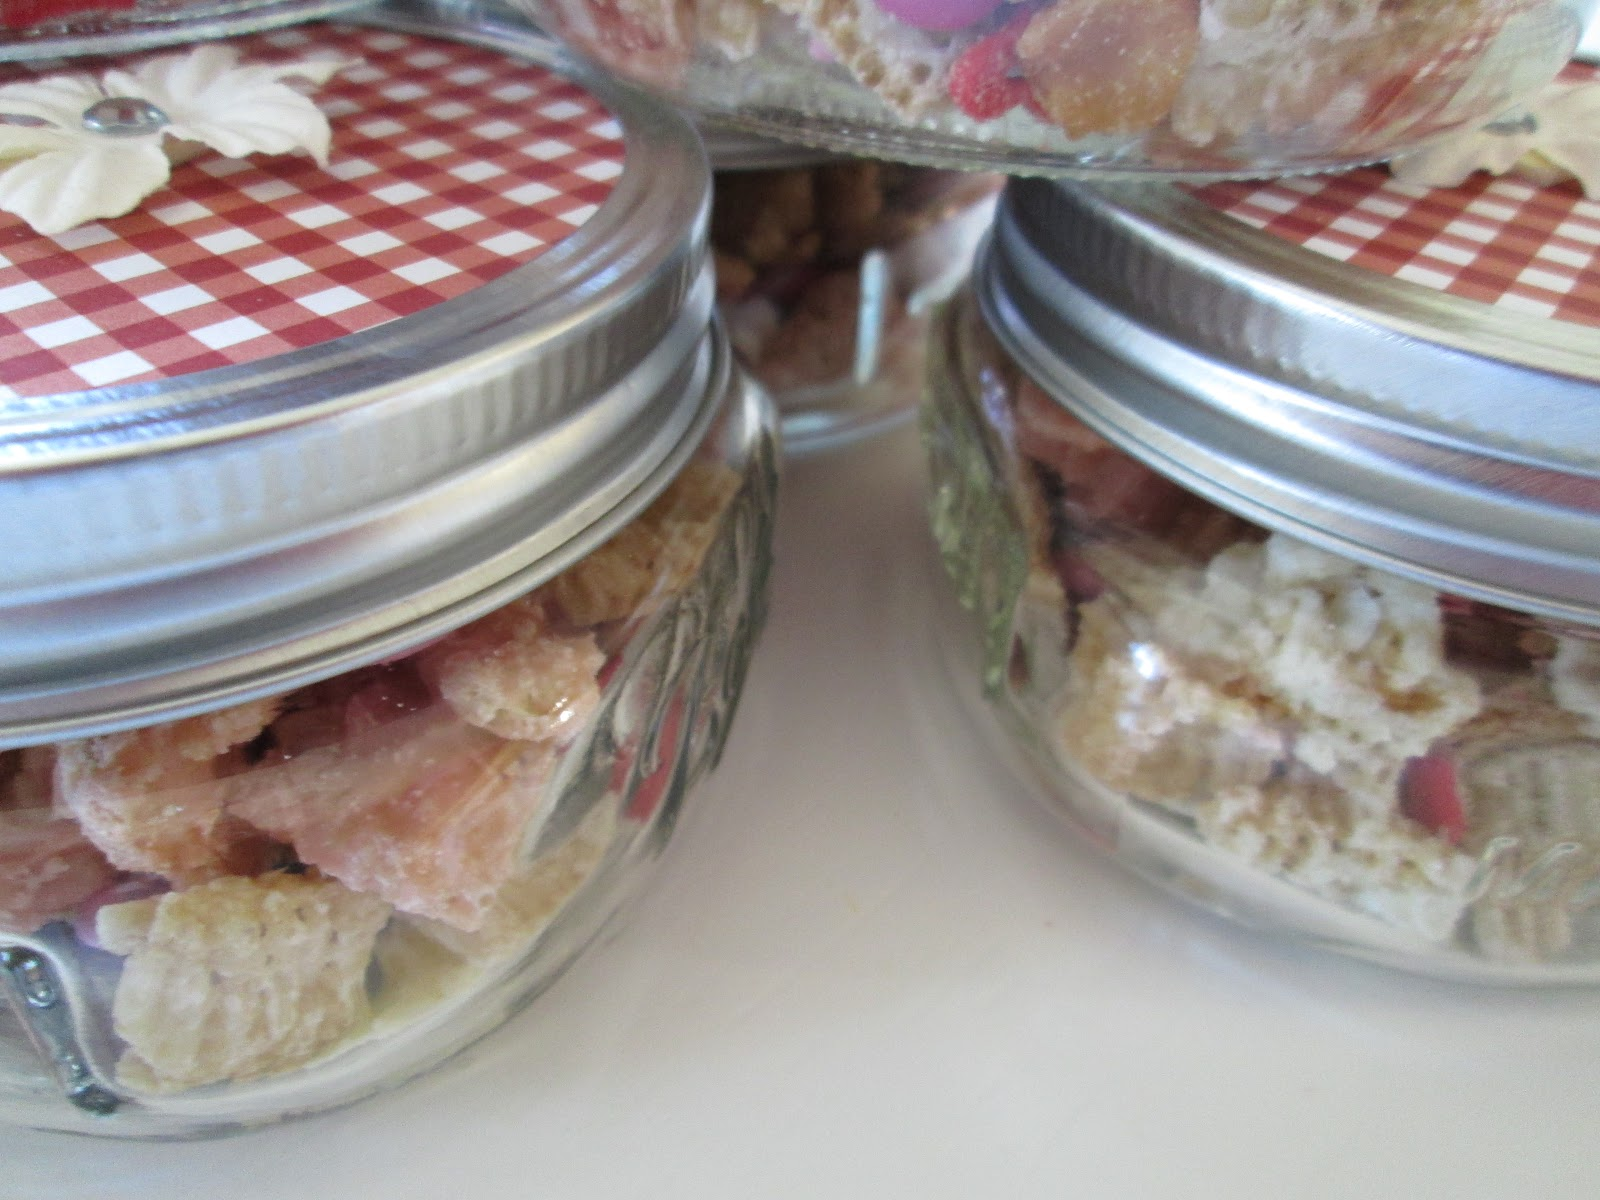 i decorated the top of the jar with a pice of red and white gingham scrapbook paper and added a little flower you could also package this mix into